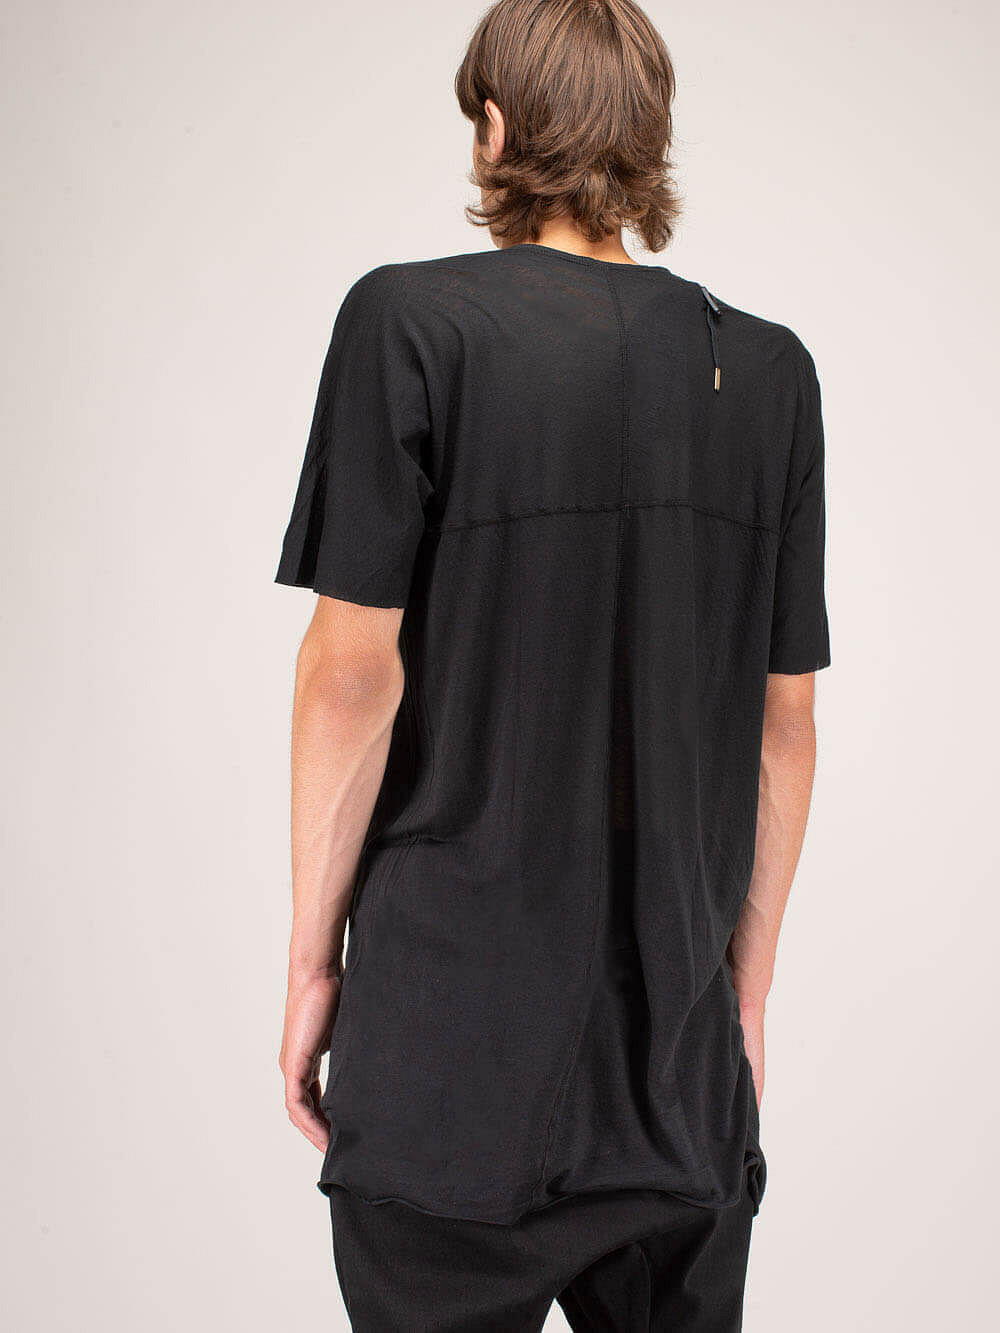 One Piece T-Shirt black dyed